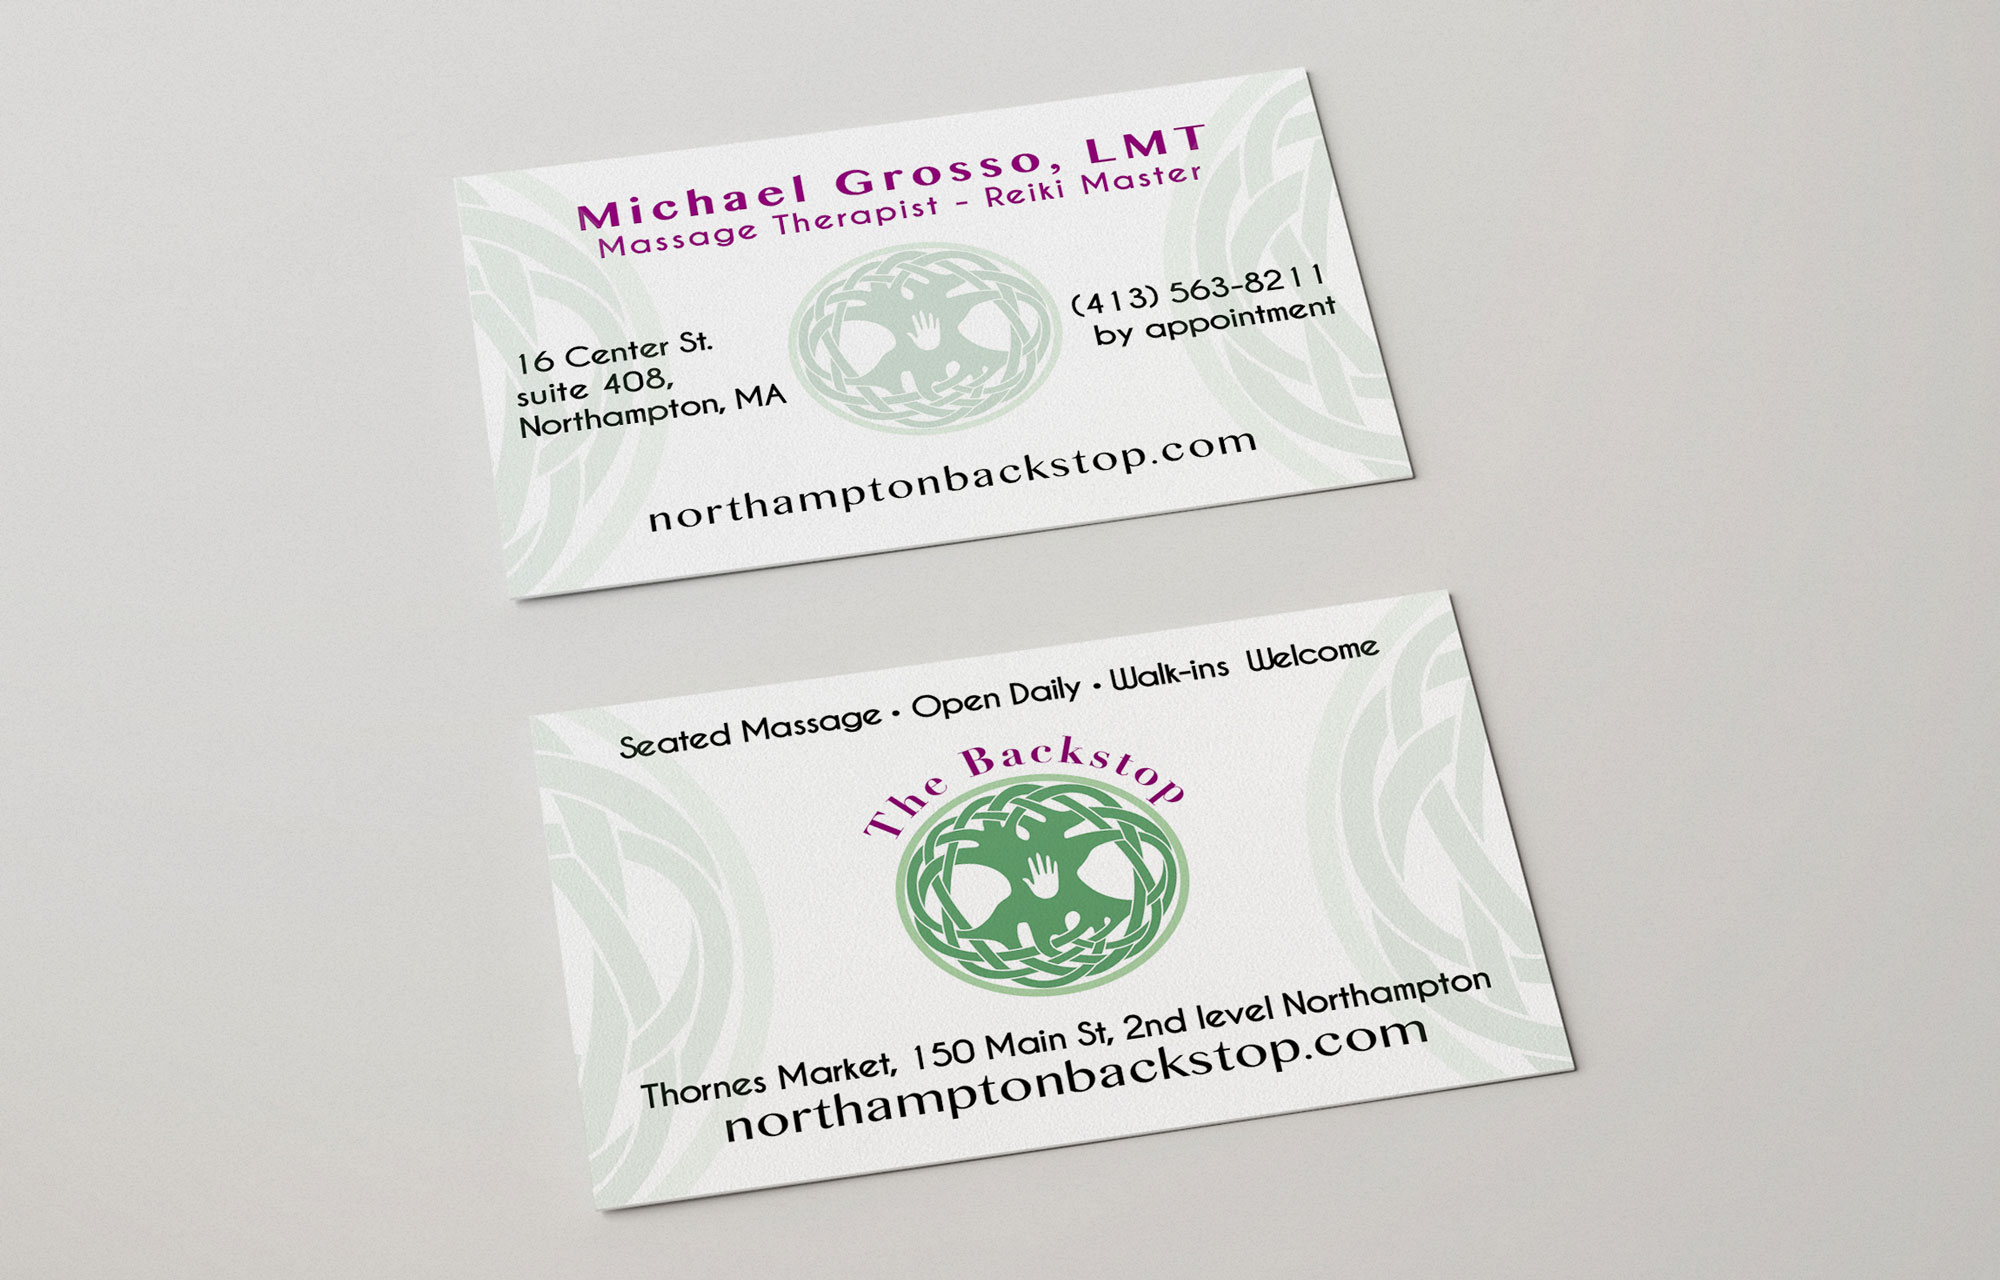 Branding and business card design for small business, massage therapy business cards, logo design for a massage therapist